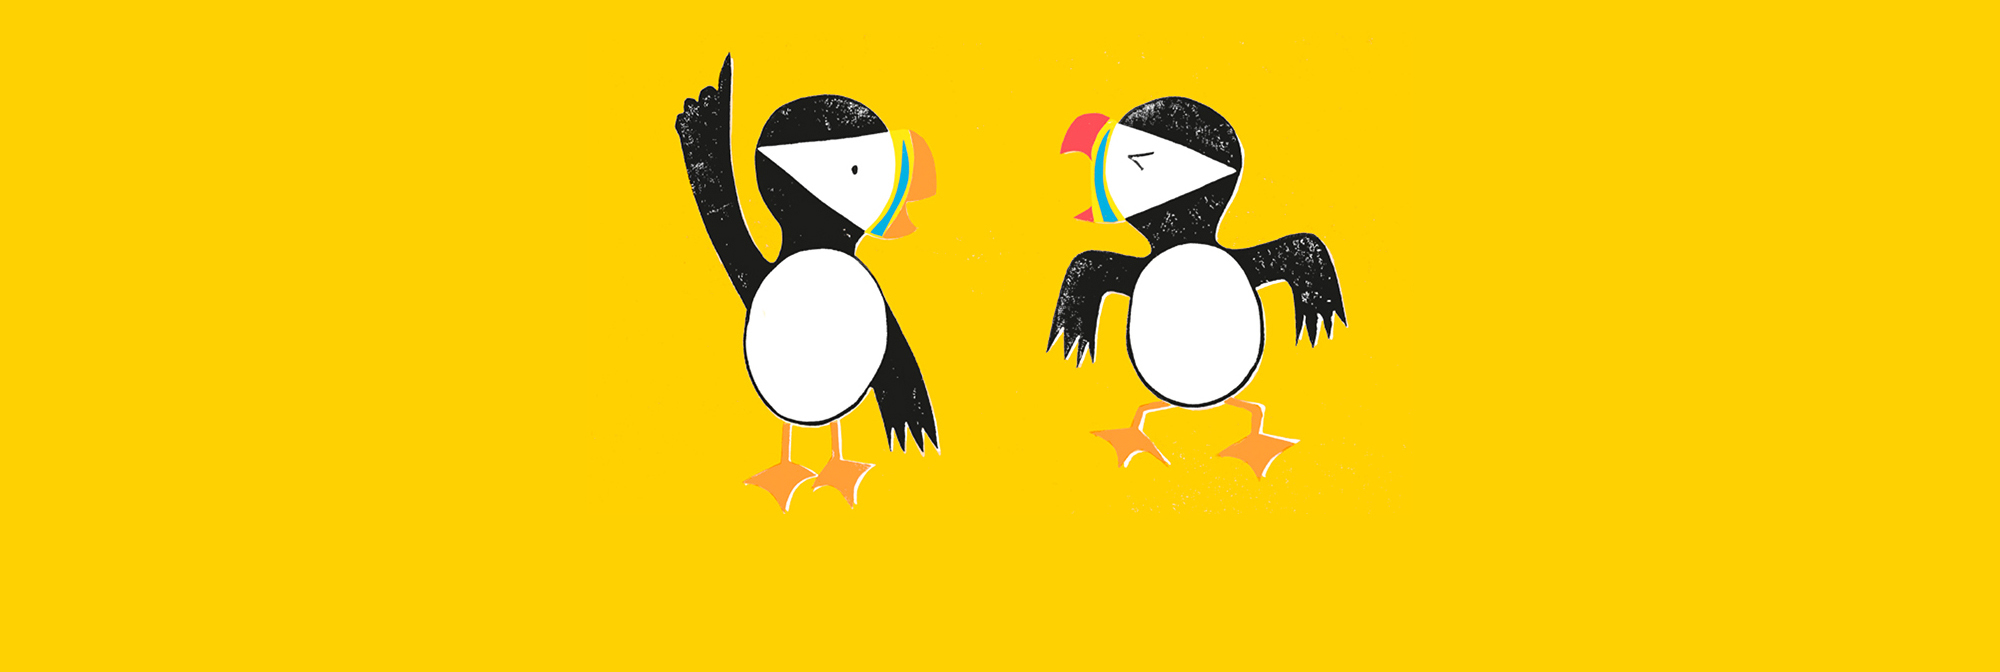 Illustration of two puffins talking to each other by Morag Hood.